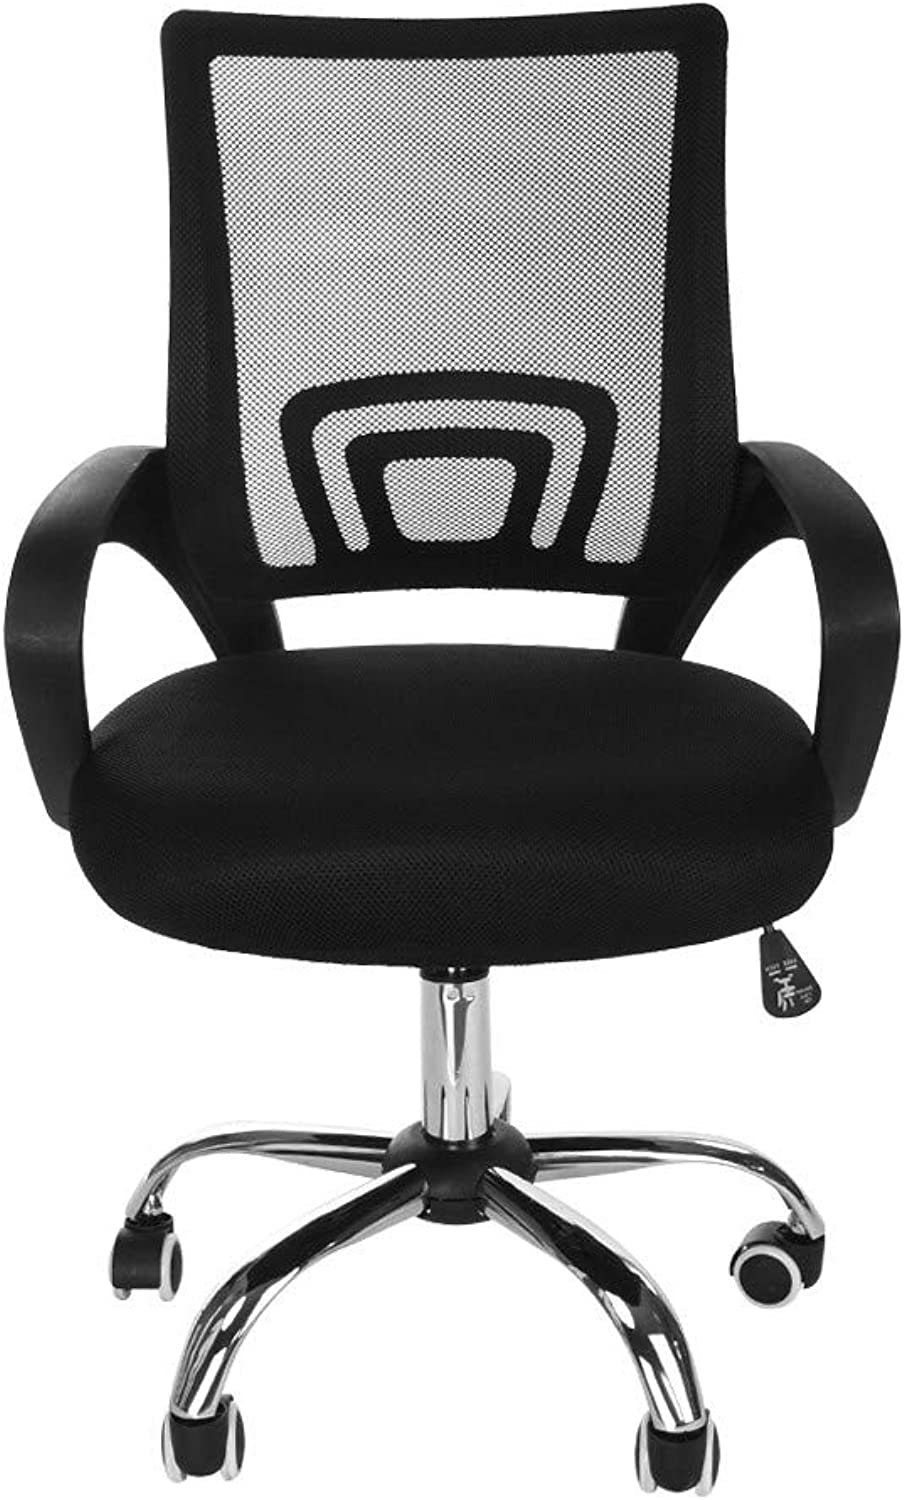 SSYUNO-Home & Garden Big and Tall Compute Ergonomic Office Chair, Height Adjustable Arms with Adjustable Lumbar, Black